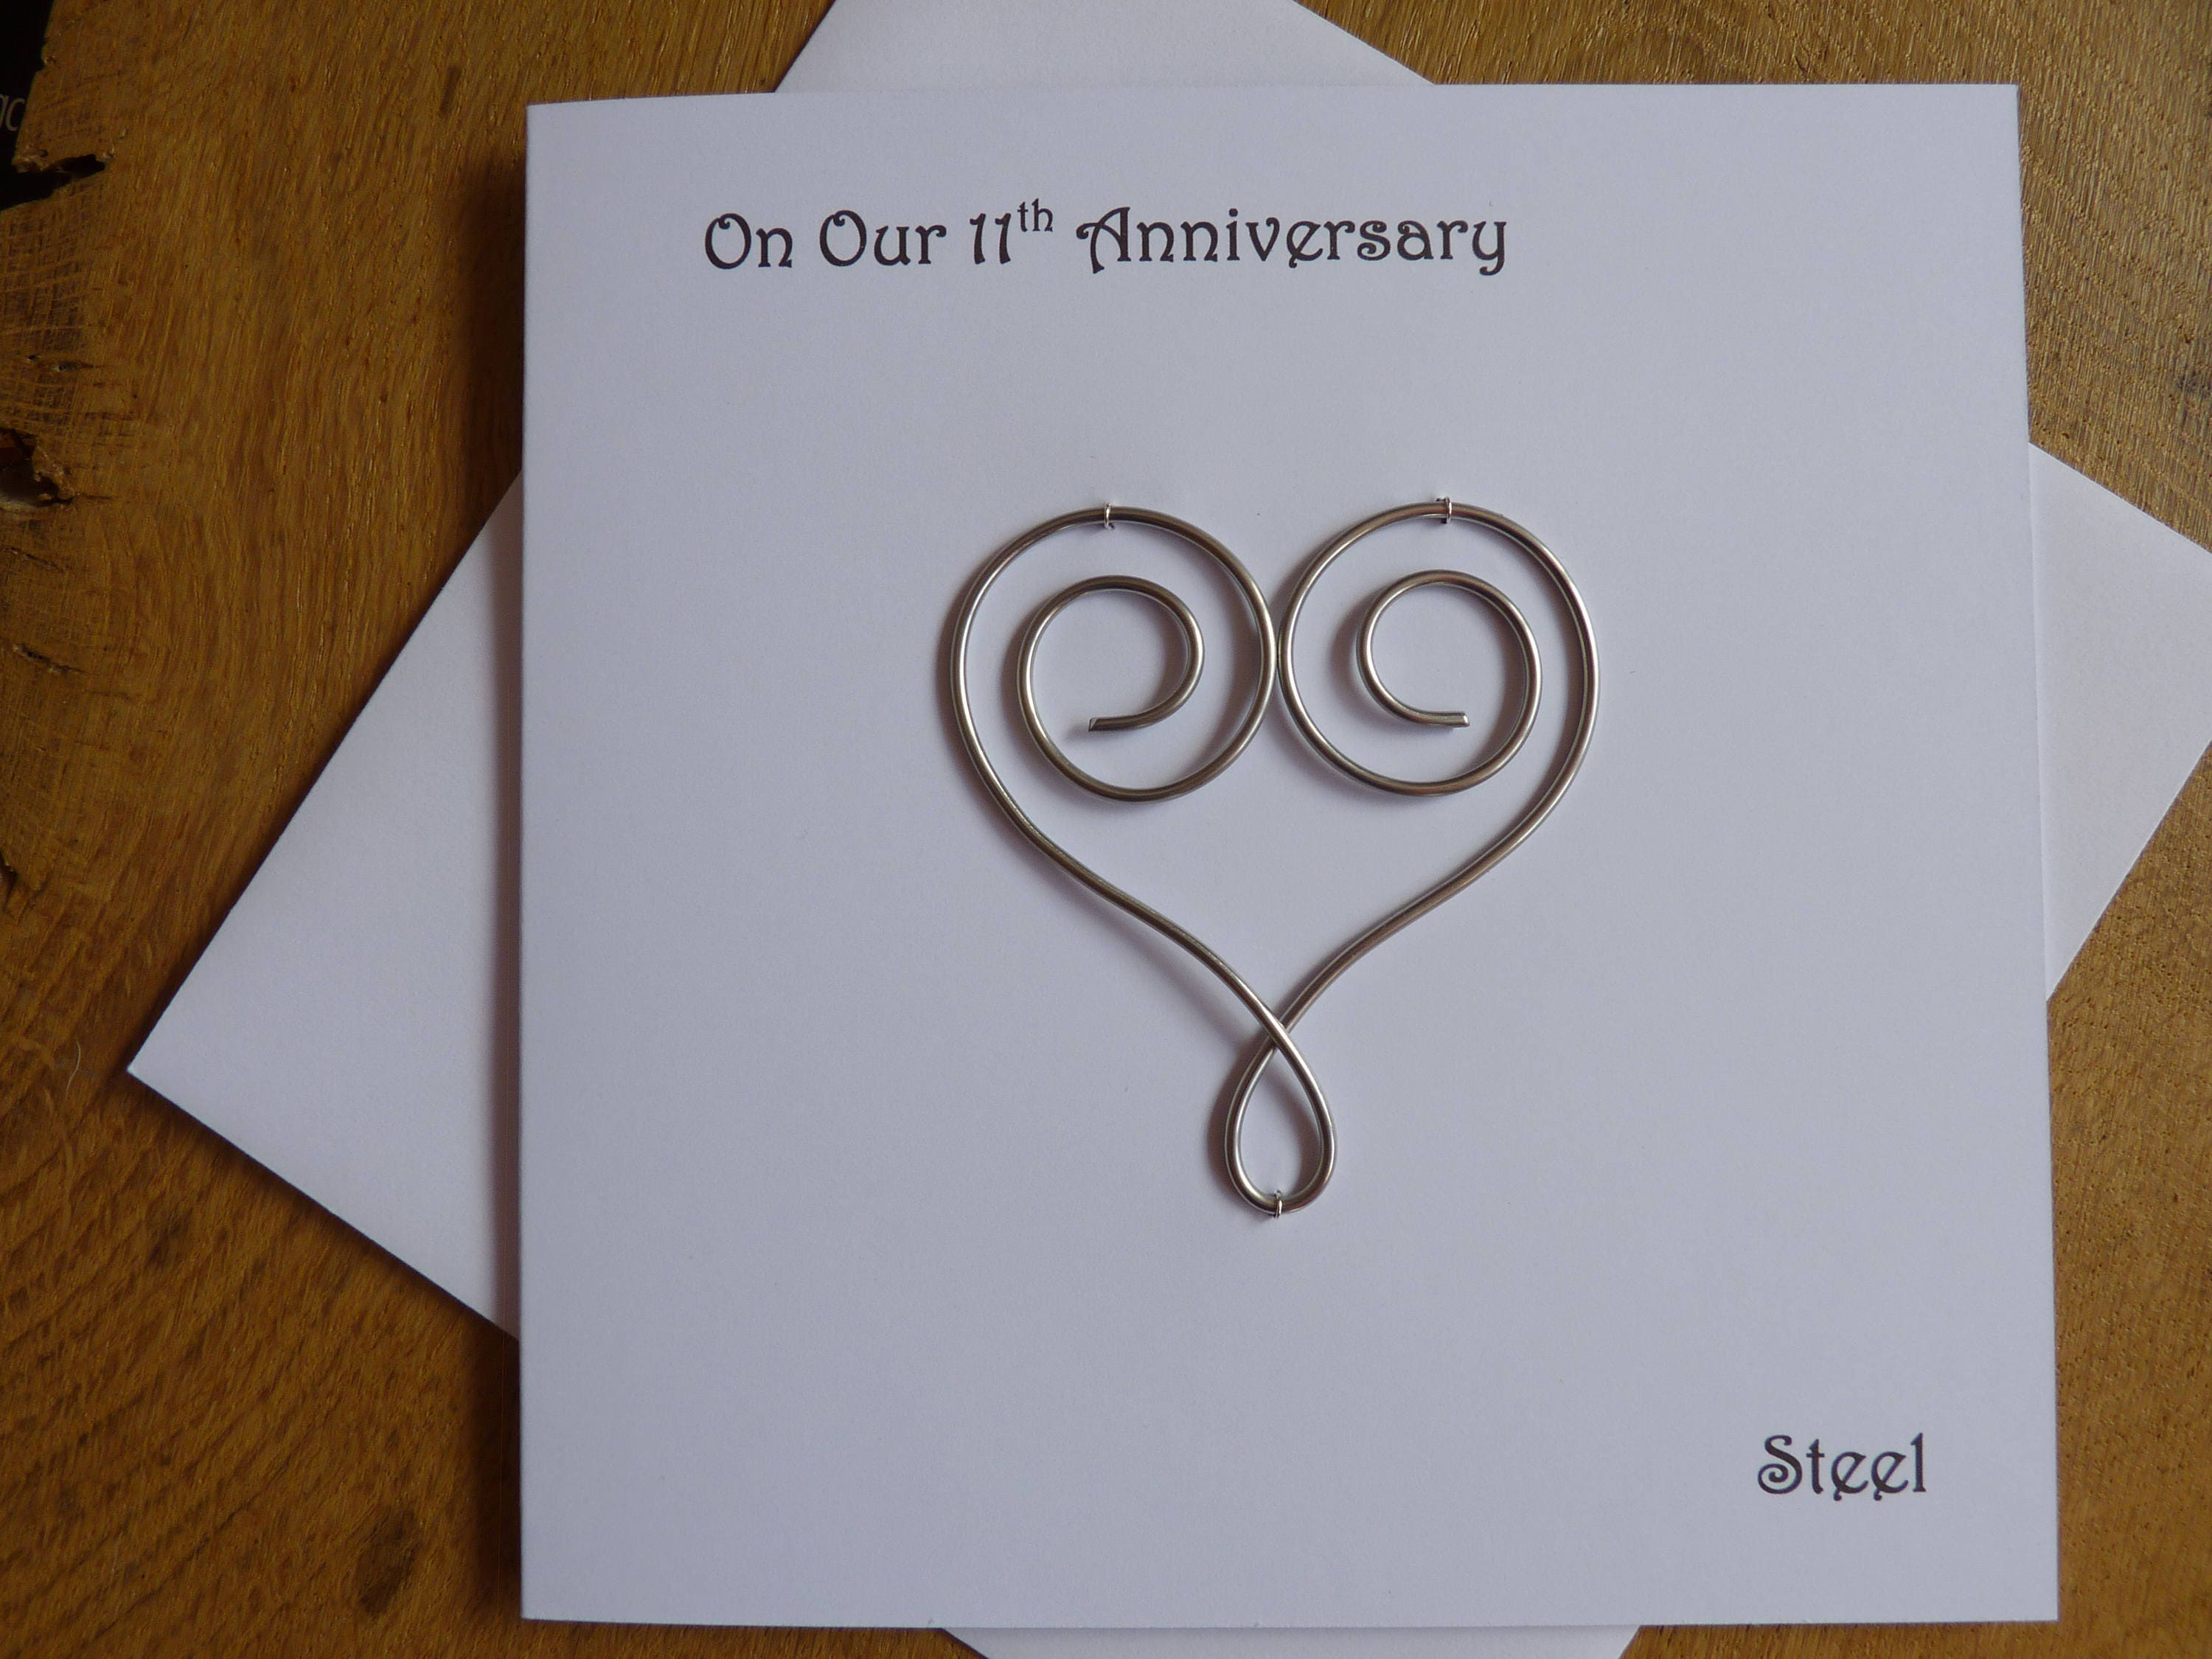 Steel Gifts 11th Wedding Anniversary: 11th Wedding Anniversary Card Steel Eleven Years Marriage